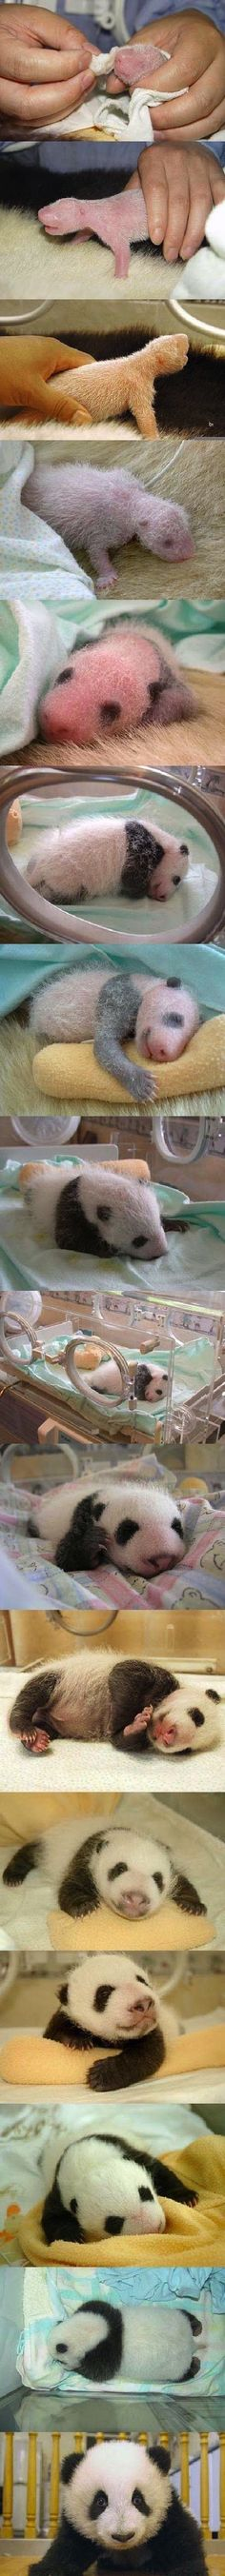 new born panda... OMG im freaking out on how adorable these new born pandas r